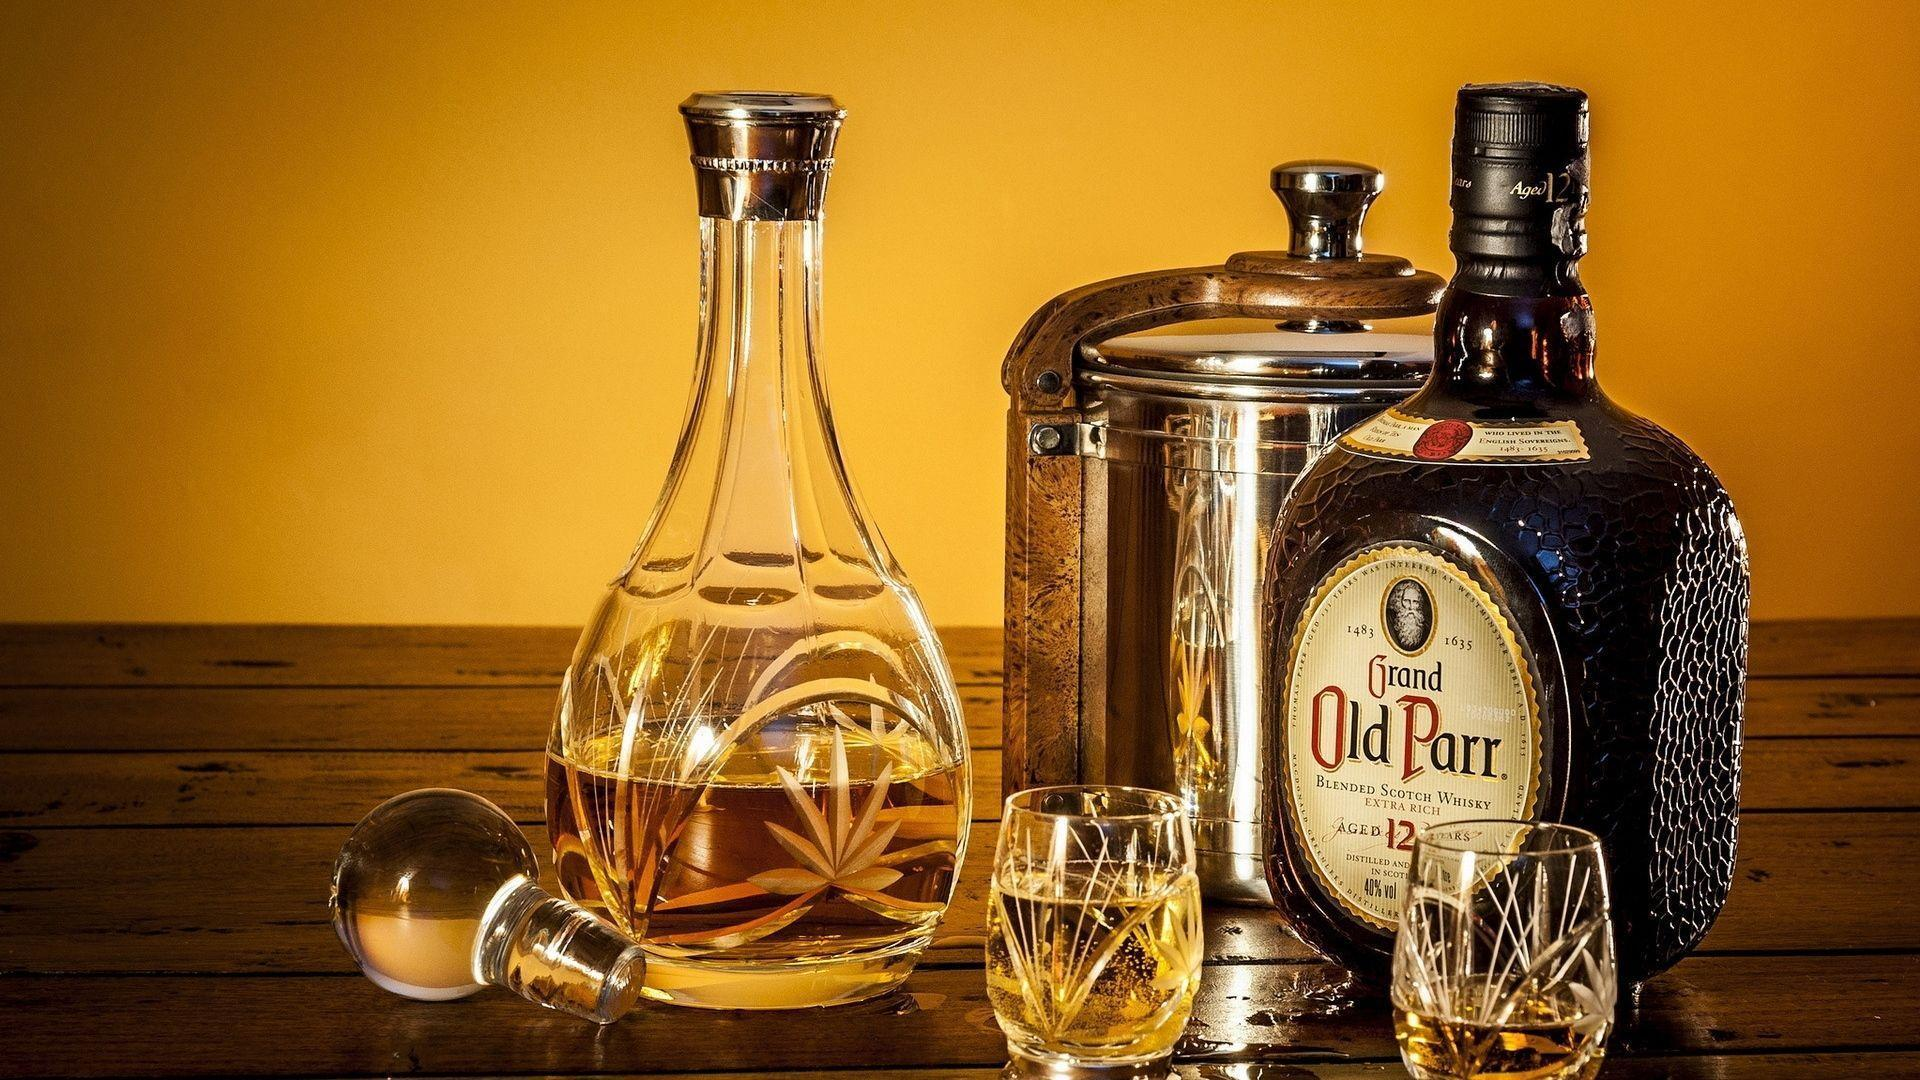 whisky 1080p wallpapers hd - photo #4